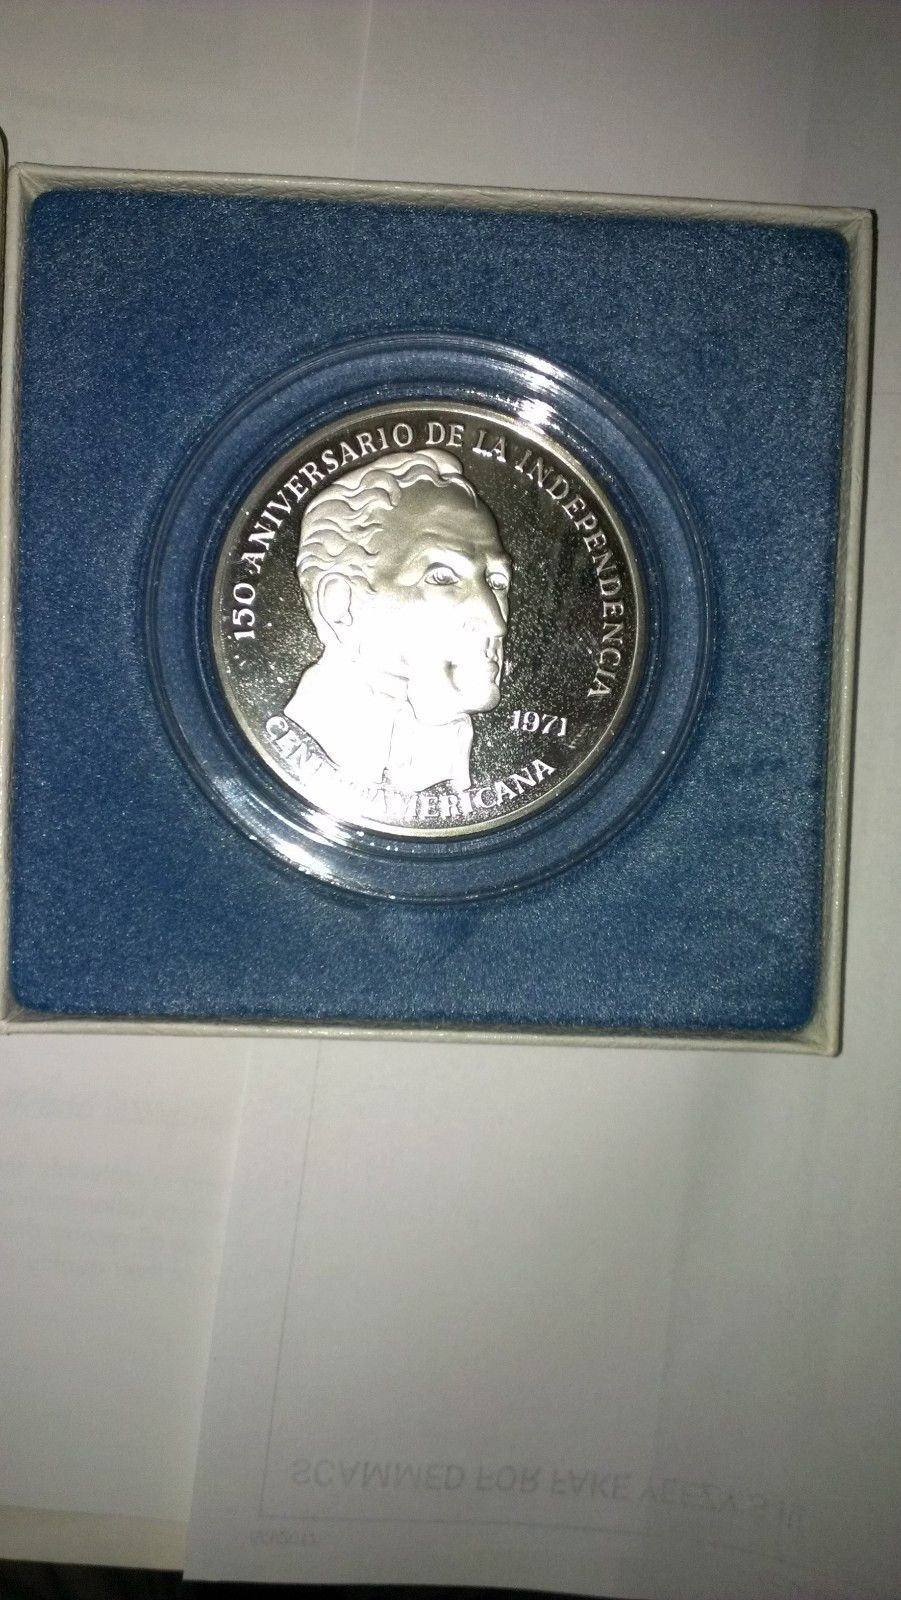 20 Balboas Panama 1971 Proof Coin 2k grn Sterling  + Certificate of Authenticity